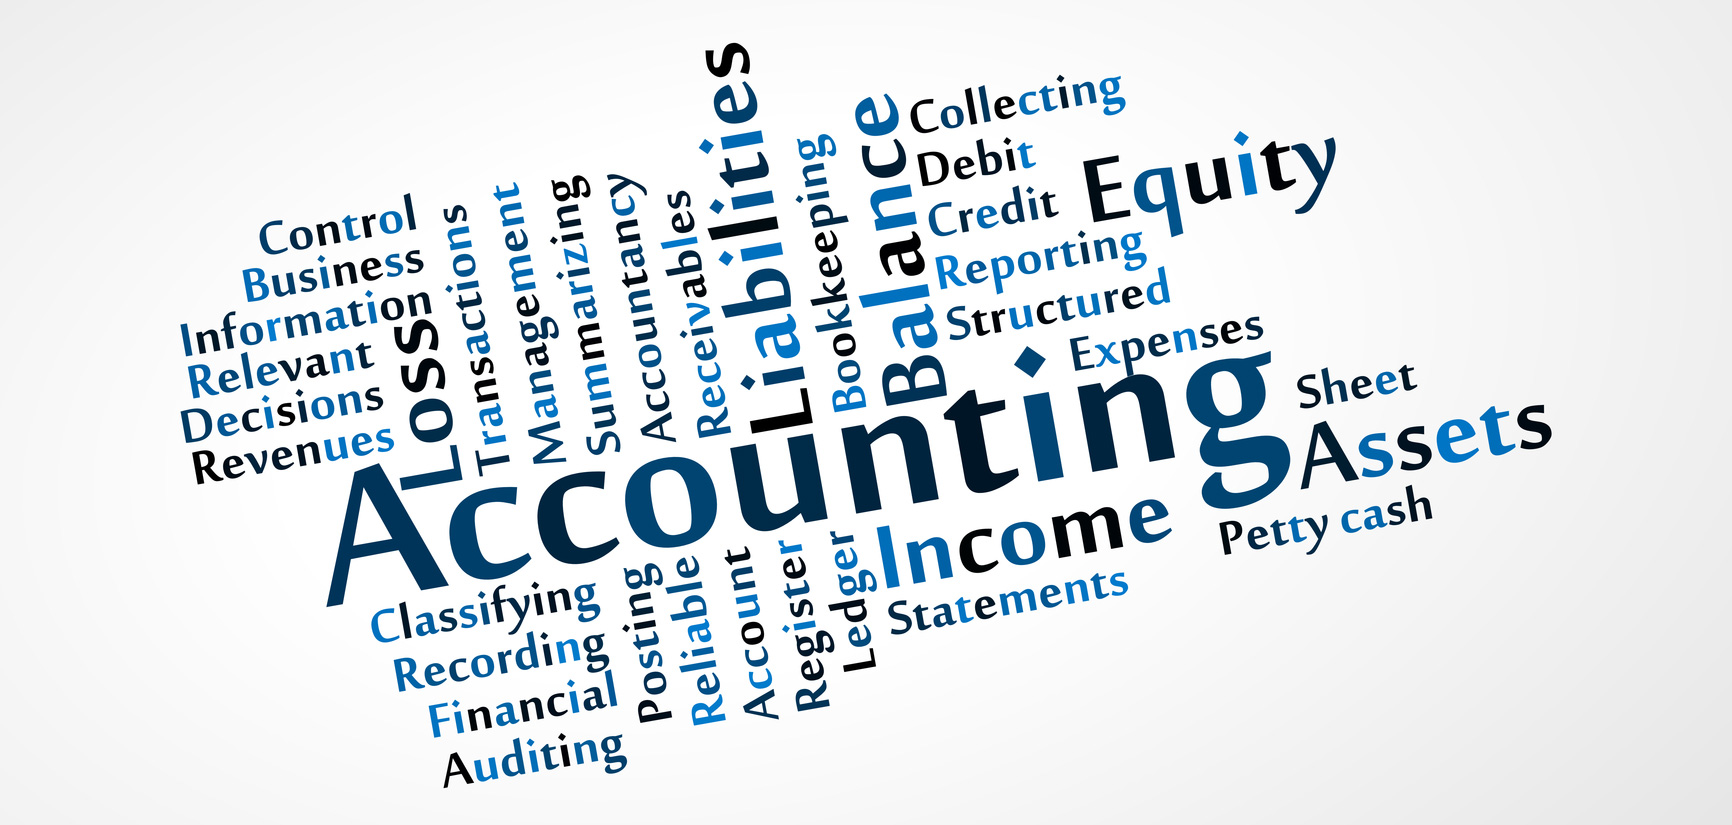 accounting_text_image